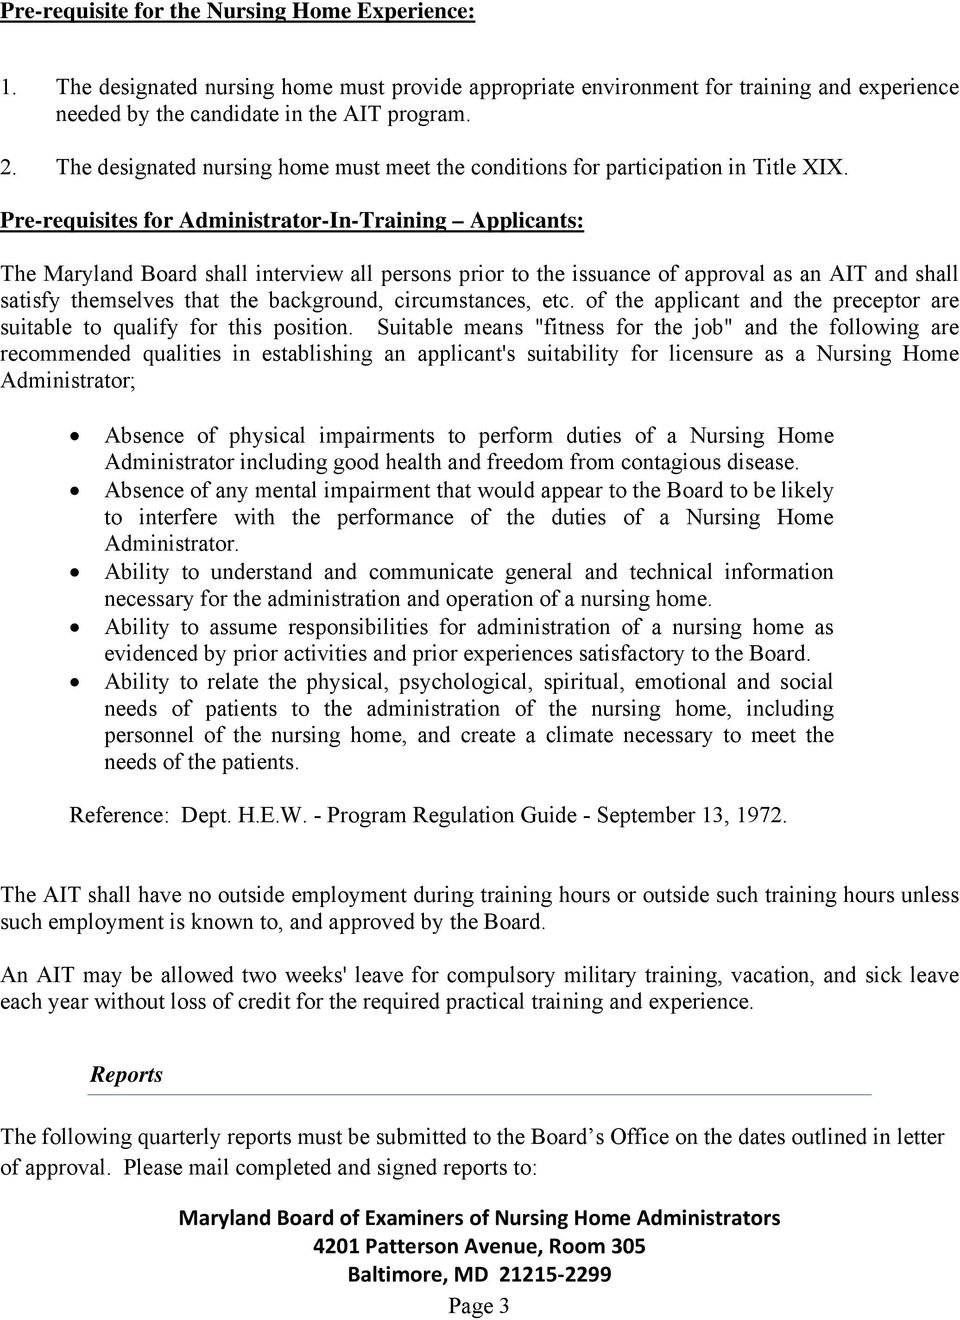 Pre-requisites for Administrator-In-Training Applicants: The Maryland Board shall interview all persons prior to the issuance of approval as an AIT and shall satisfy themselves that the background,